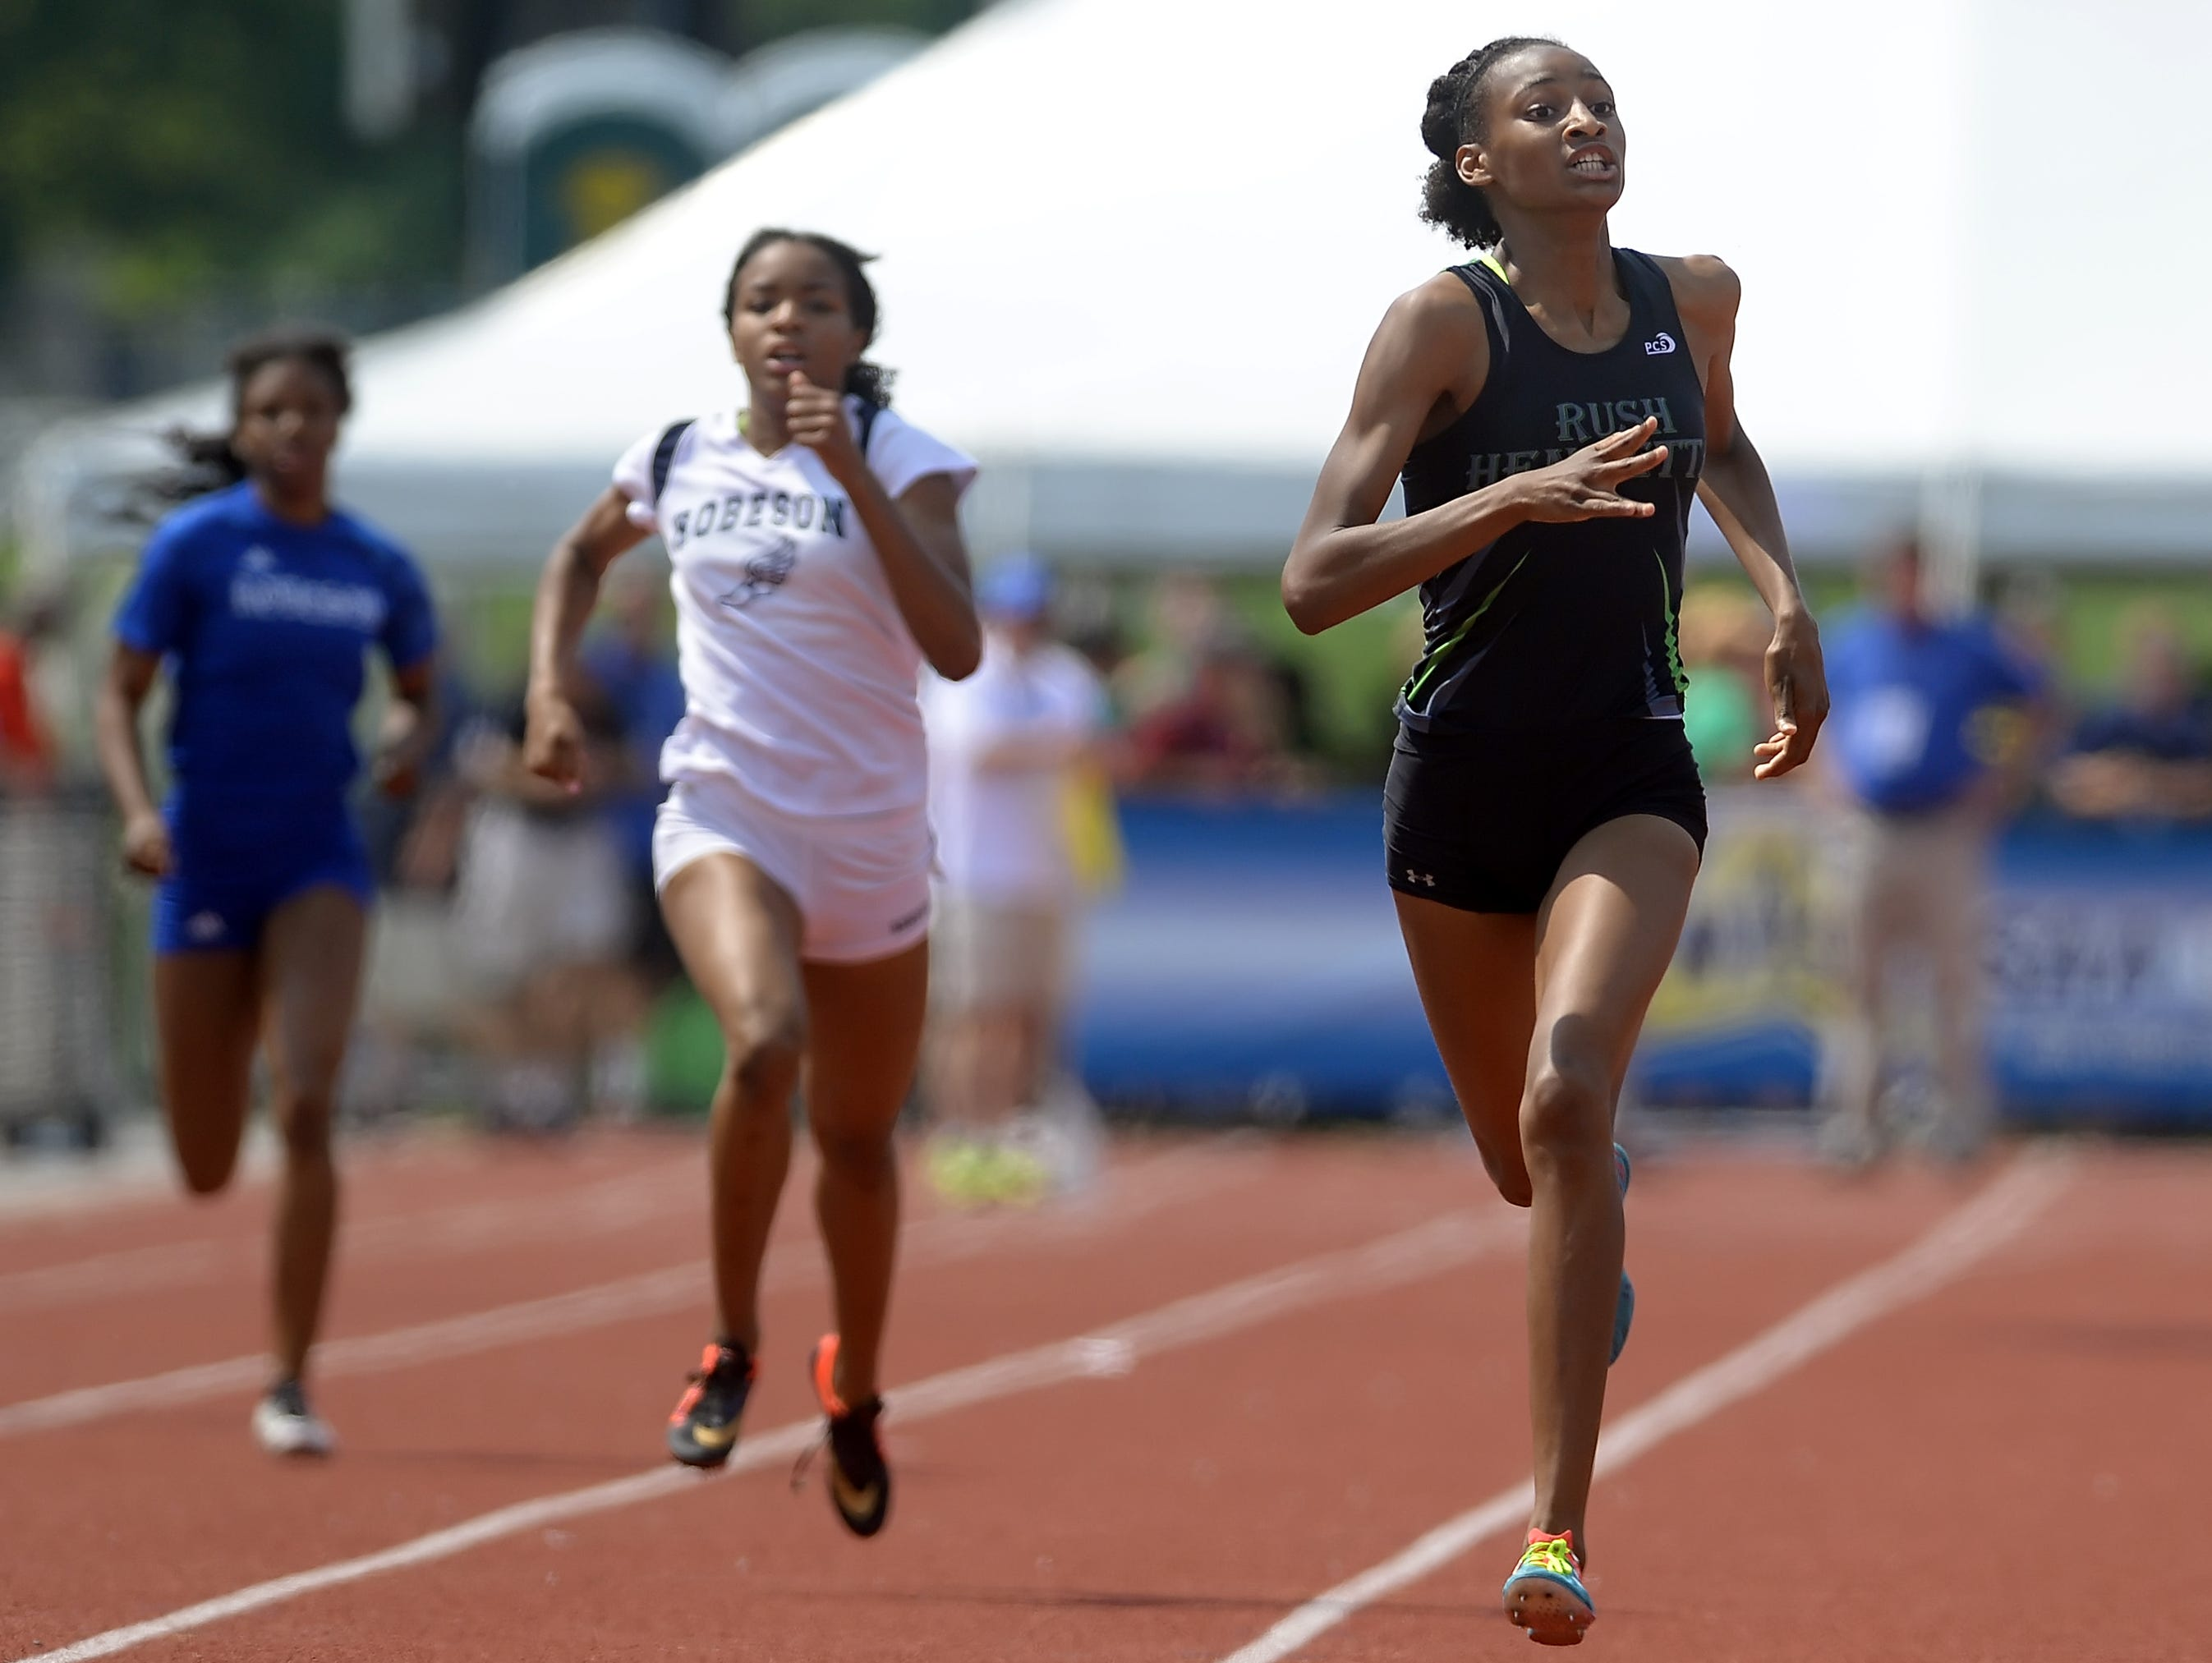 Rush-Henrietta's Sammy Watson, right at the 2015 high school outdoor state meet, won two events in here age division at the USA Track & Field National Junior Olympic Track & Field Championships.